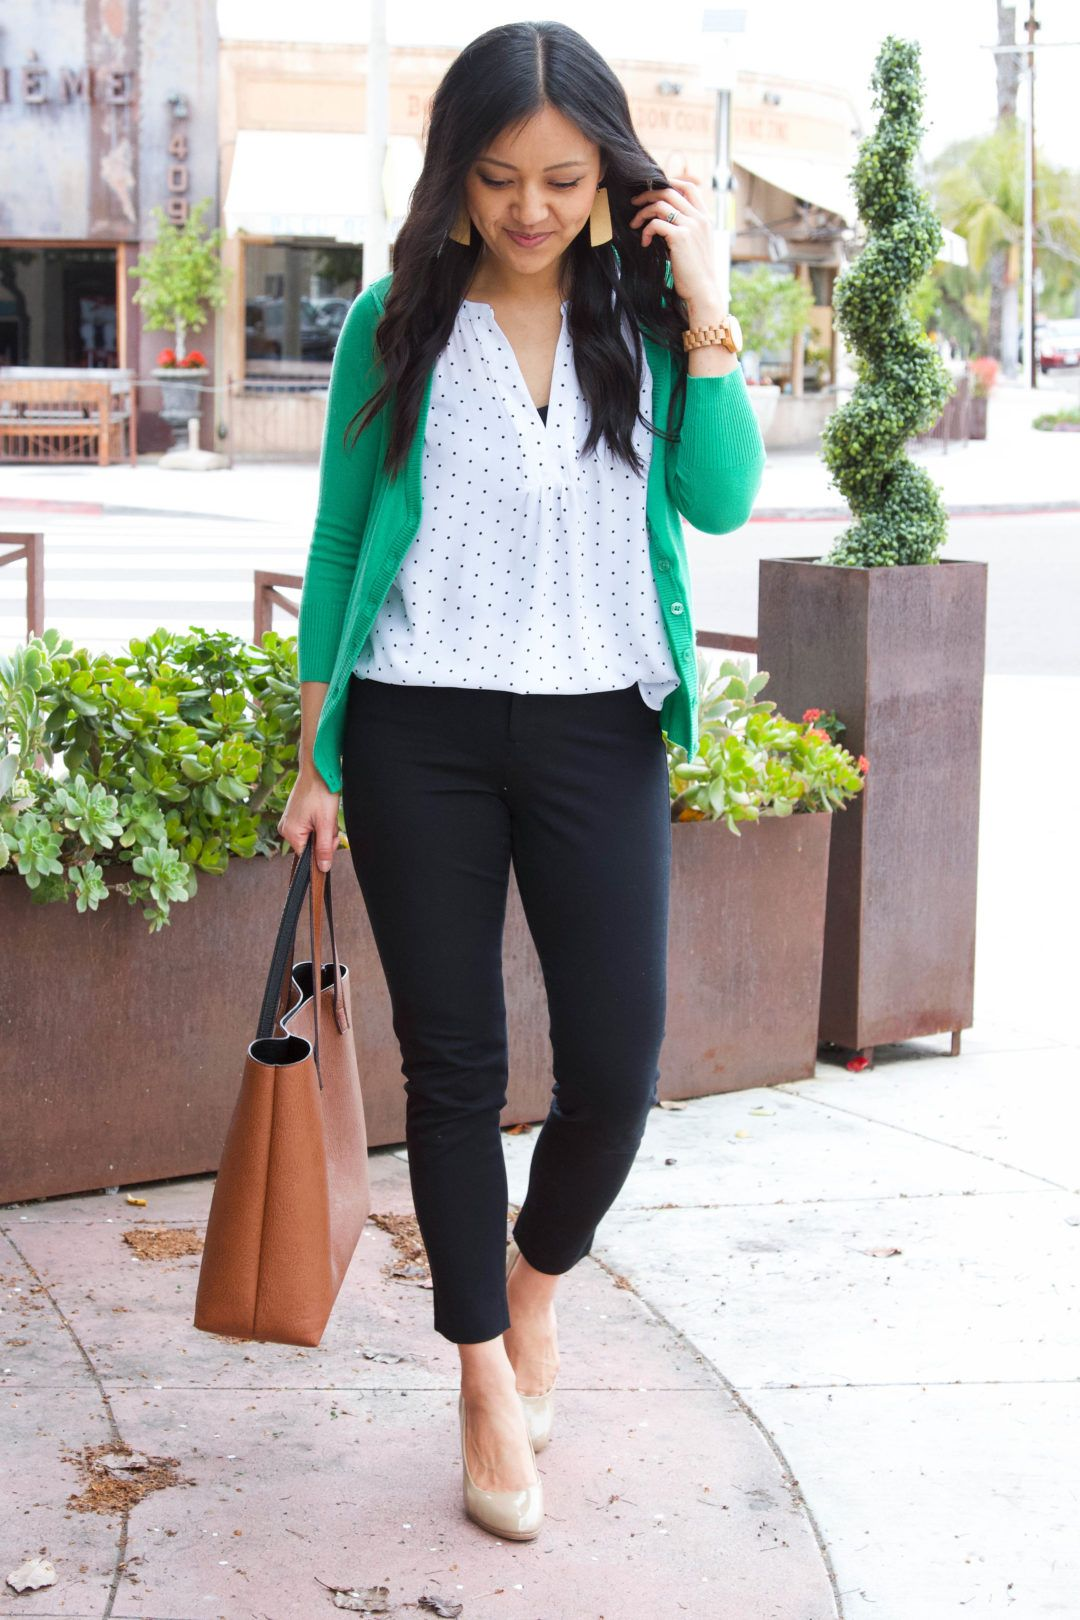 How to Add Color to Outfits the Easy Way – Part 1 of 3